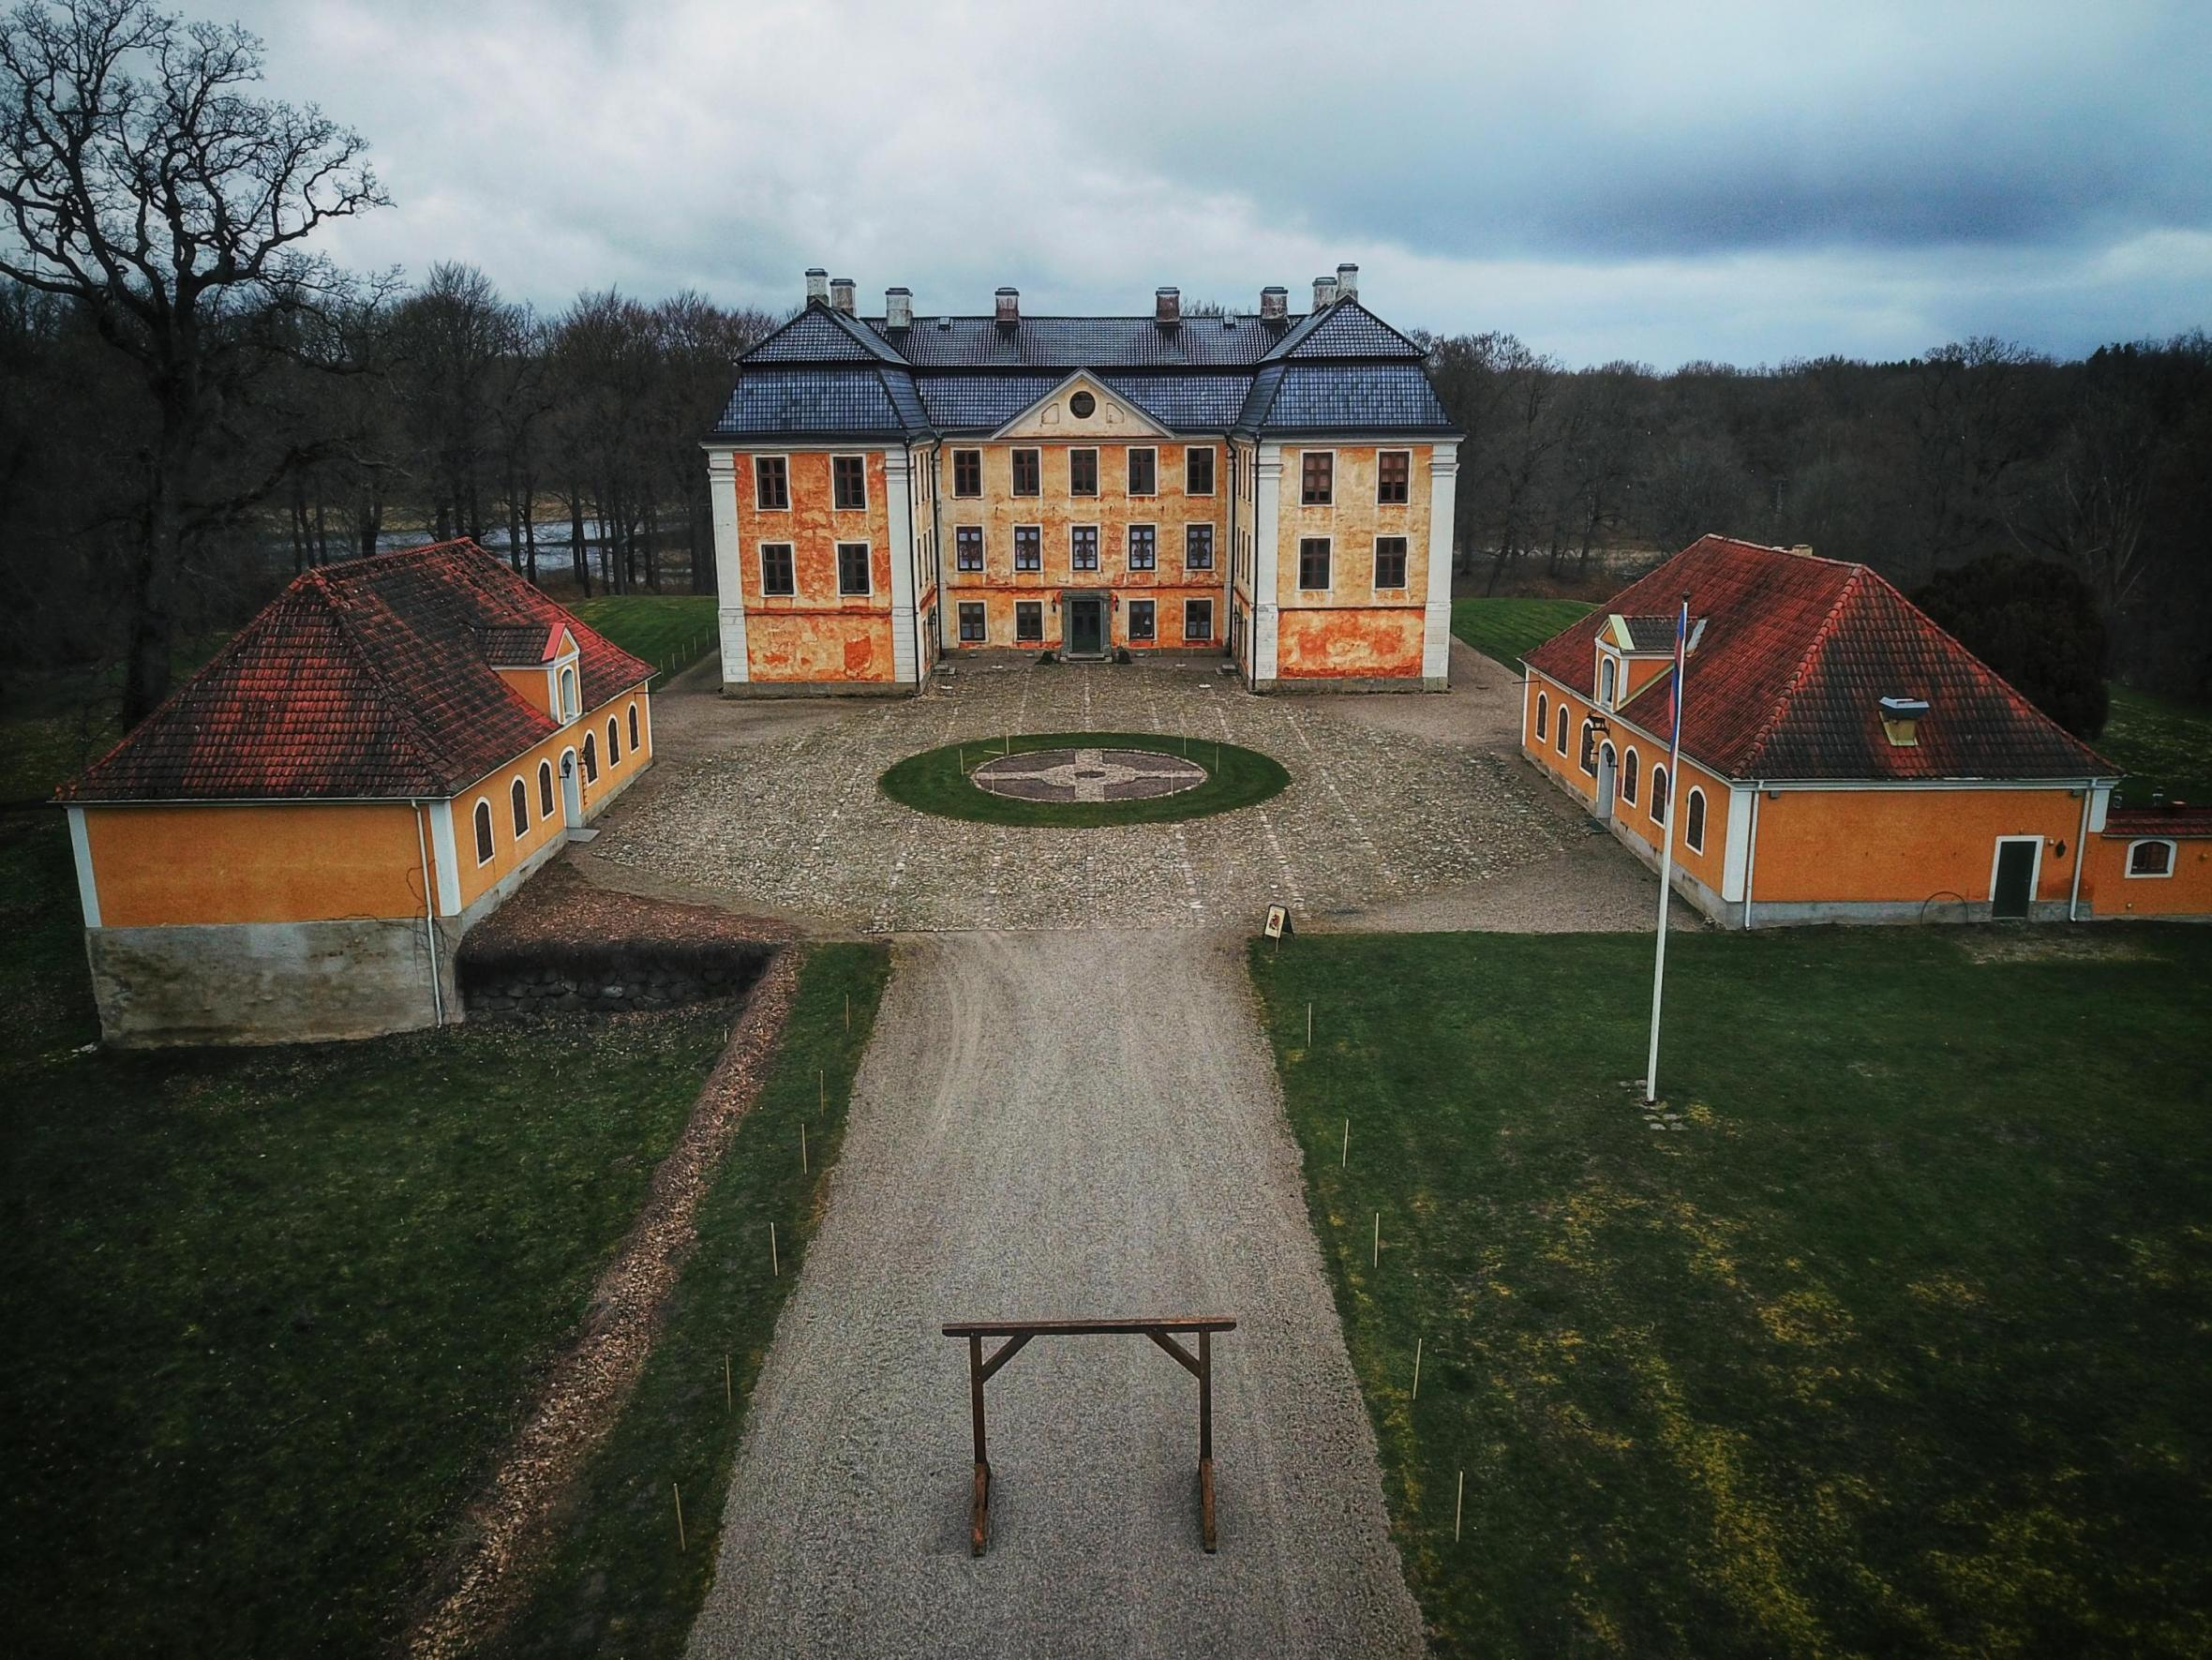 A top view of Christinehof castle on a cloudy day